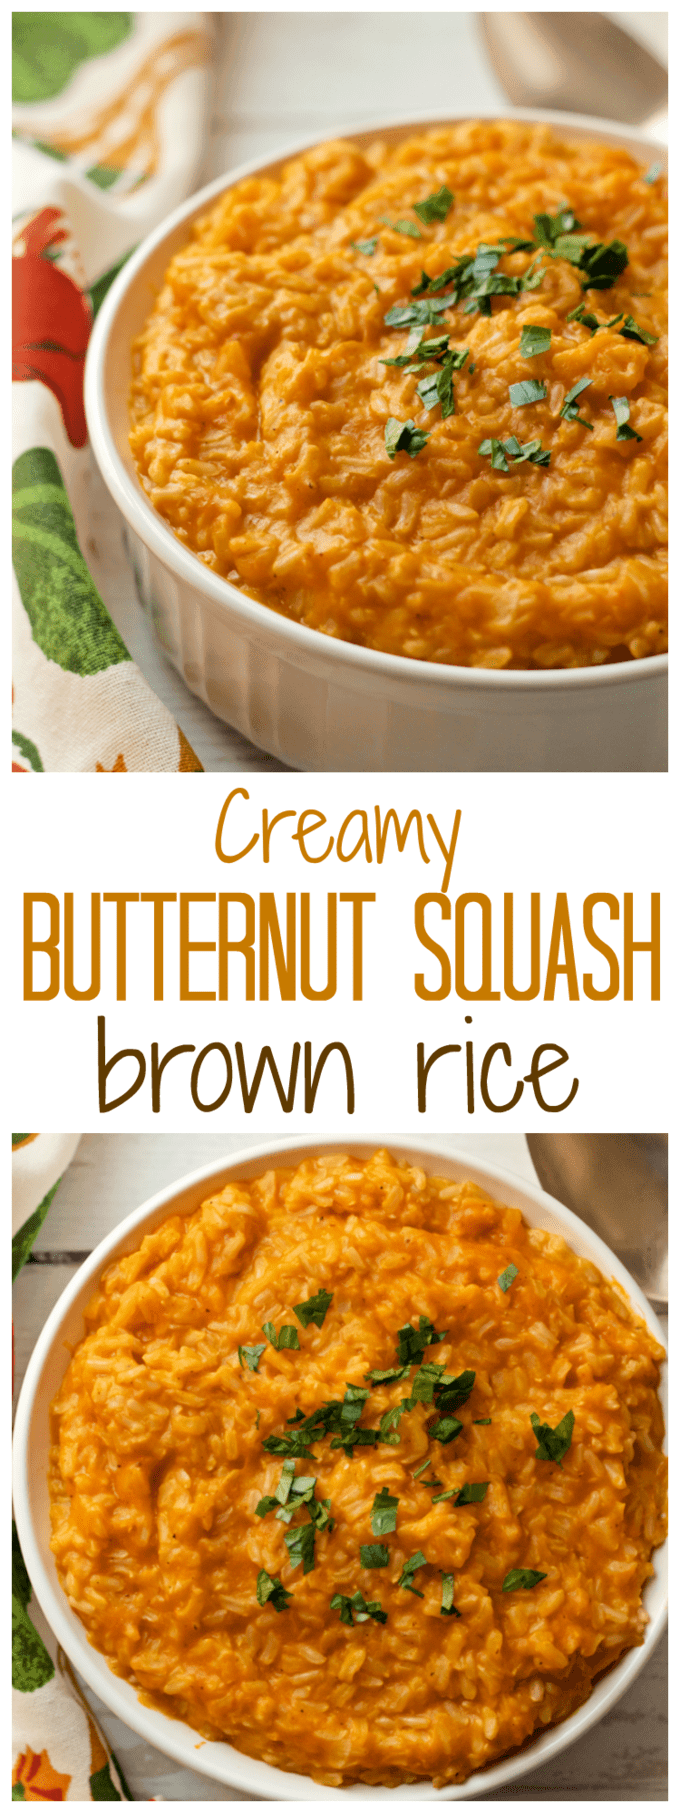 Creamy butternut squash brown rice makes for an easy, delicious side dish! Plus, 2 variations to try | FamilyFoodontheTable.com